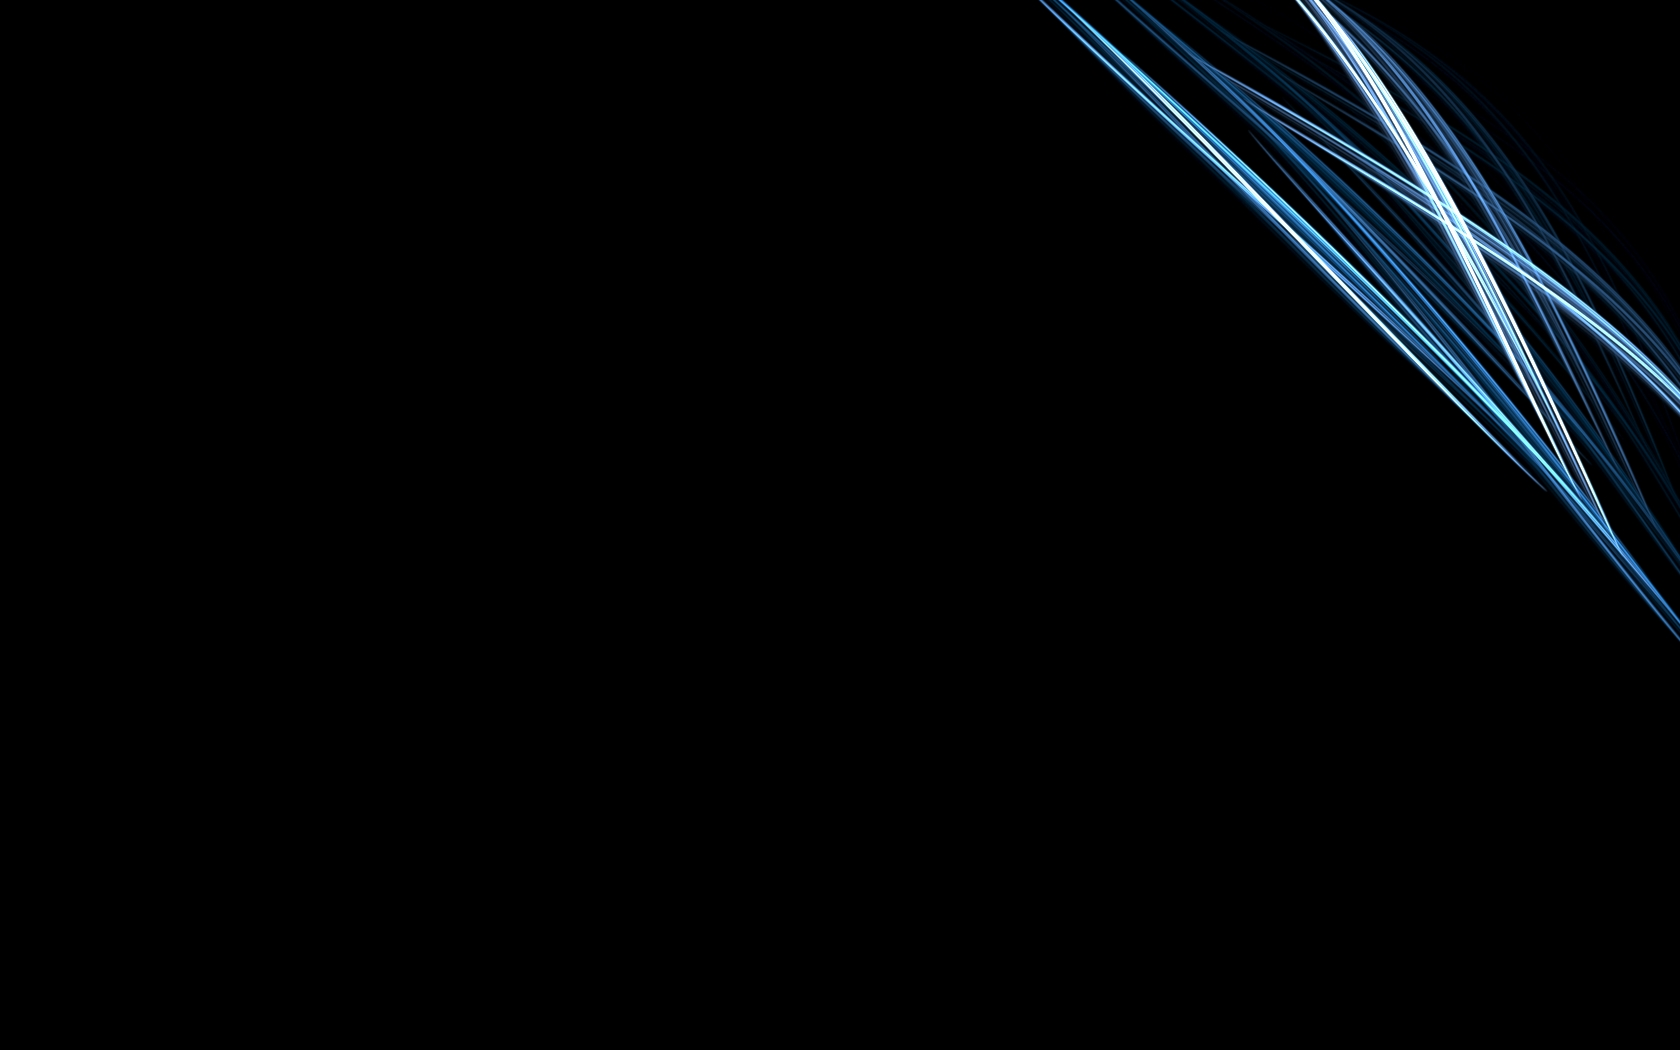 Black And Blue Wallpaper Search Results newdesktopwallpapersinfo 1680x1050